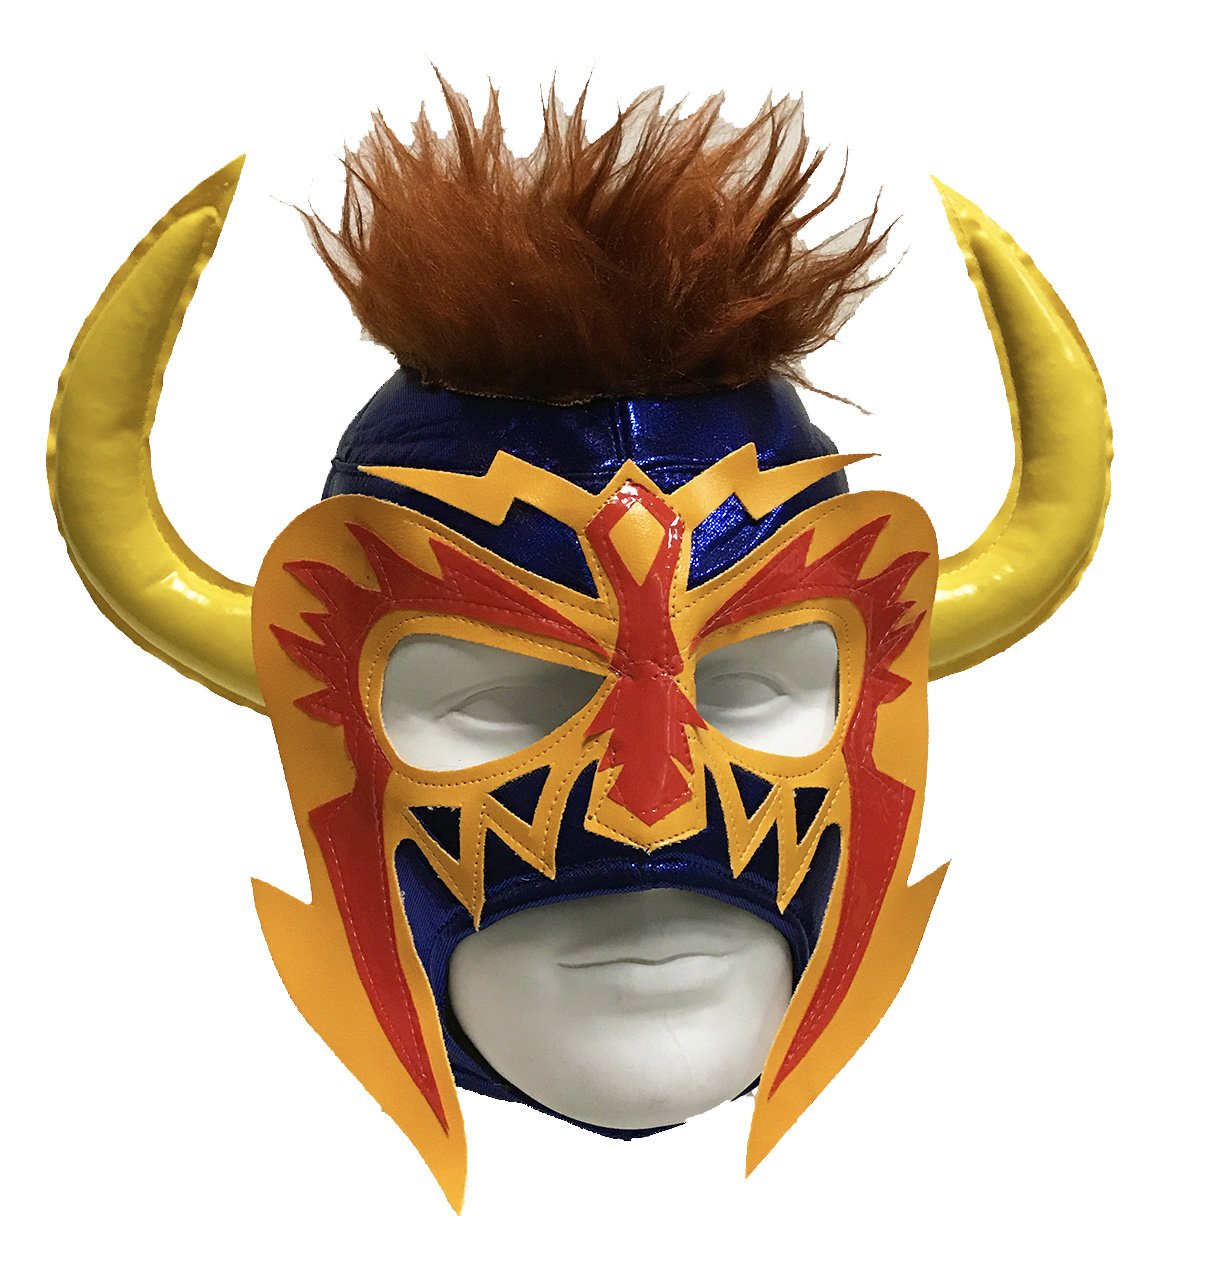 PSICOSIS Adult Lucha Libre Wrestling Mask (pro-fit) Costume Wear - Blue/Yell/Red